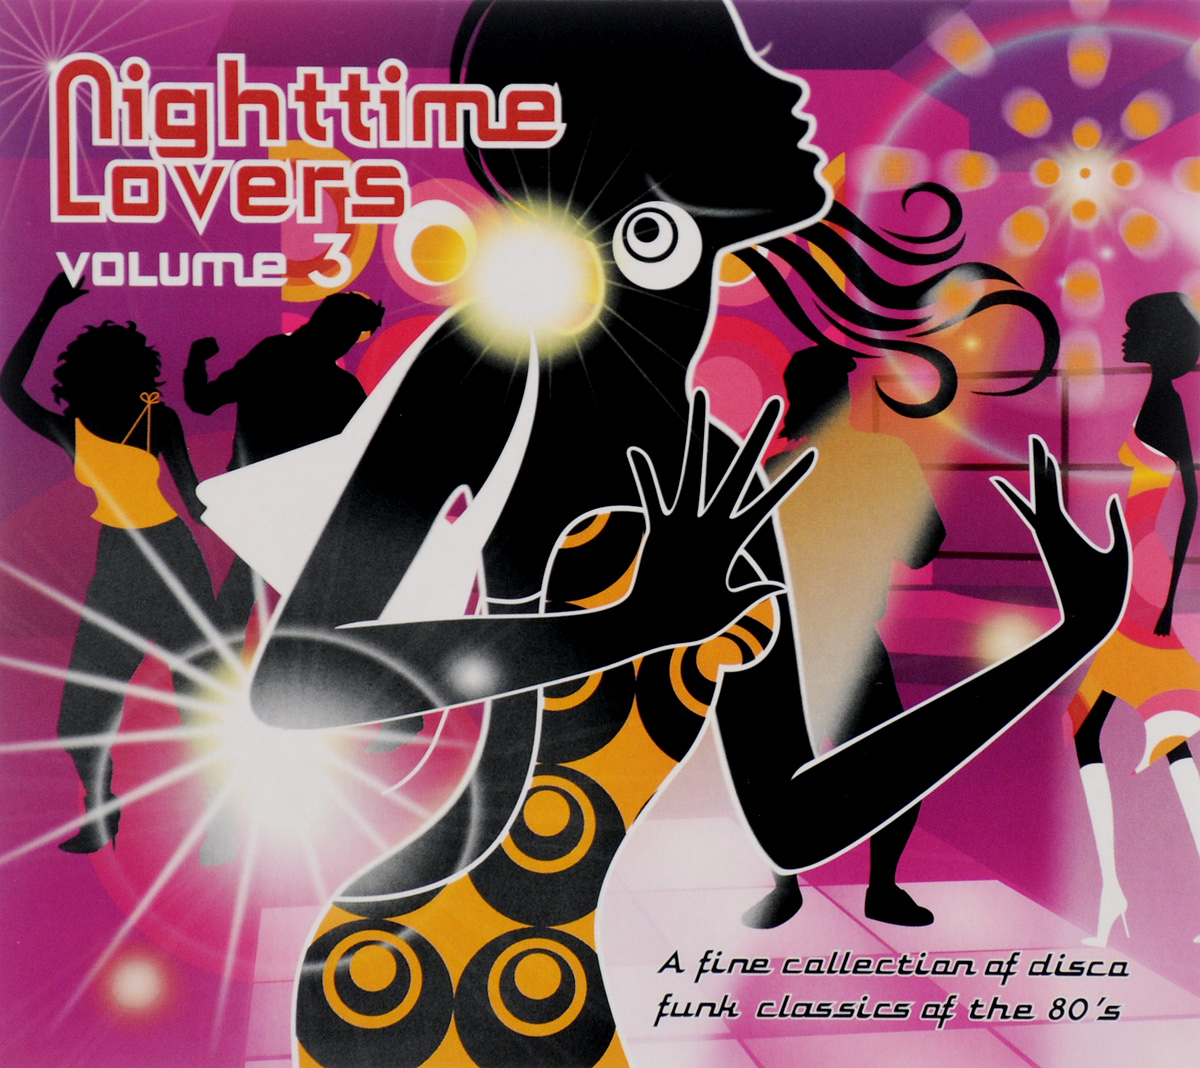 "Nighttime Lovers. Volume 3. Mercy Mercy,""The Horn Section (T.H.S.)"",""Active Force"",Felicity,""One On One"",""Hypnotic"",""The Brothers Johnson"",Simplicious,""Enchantment"",""Scram"""